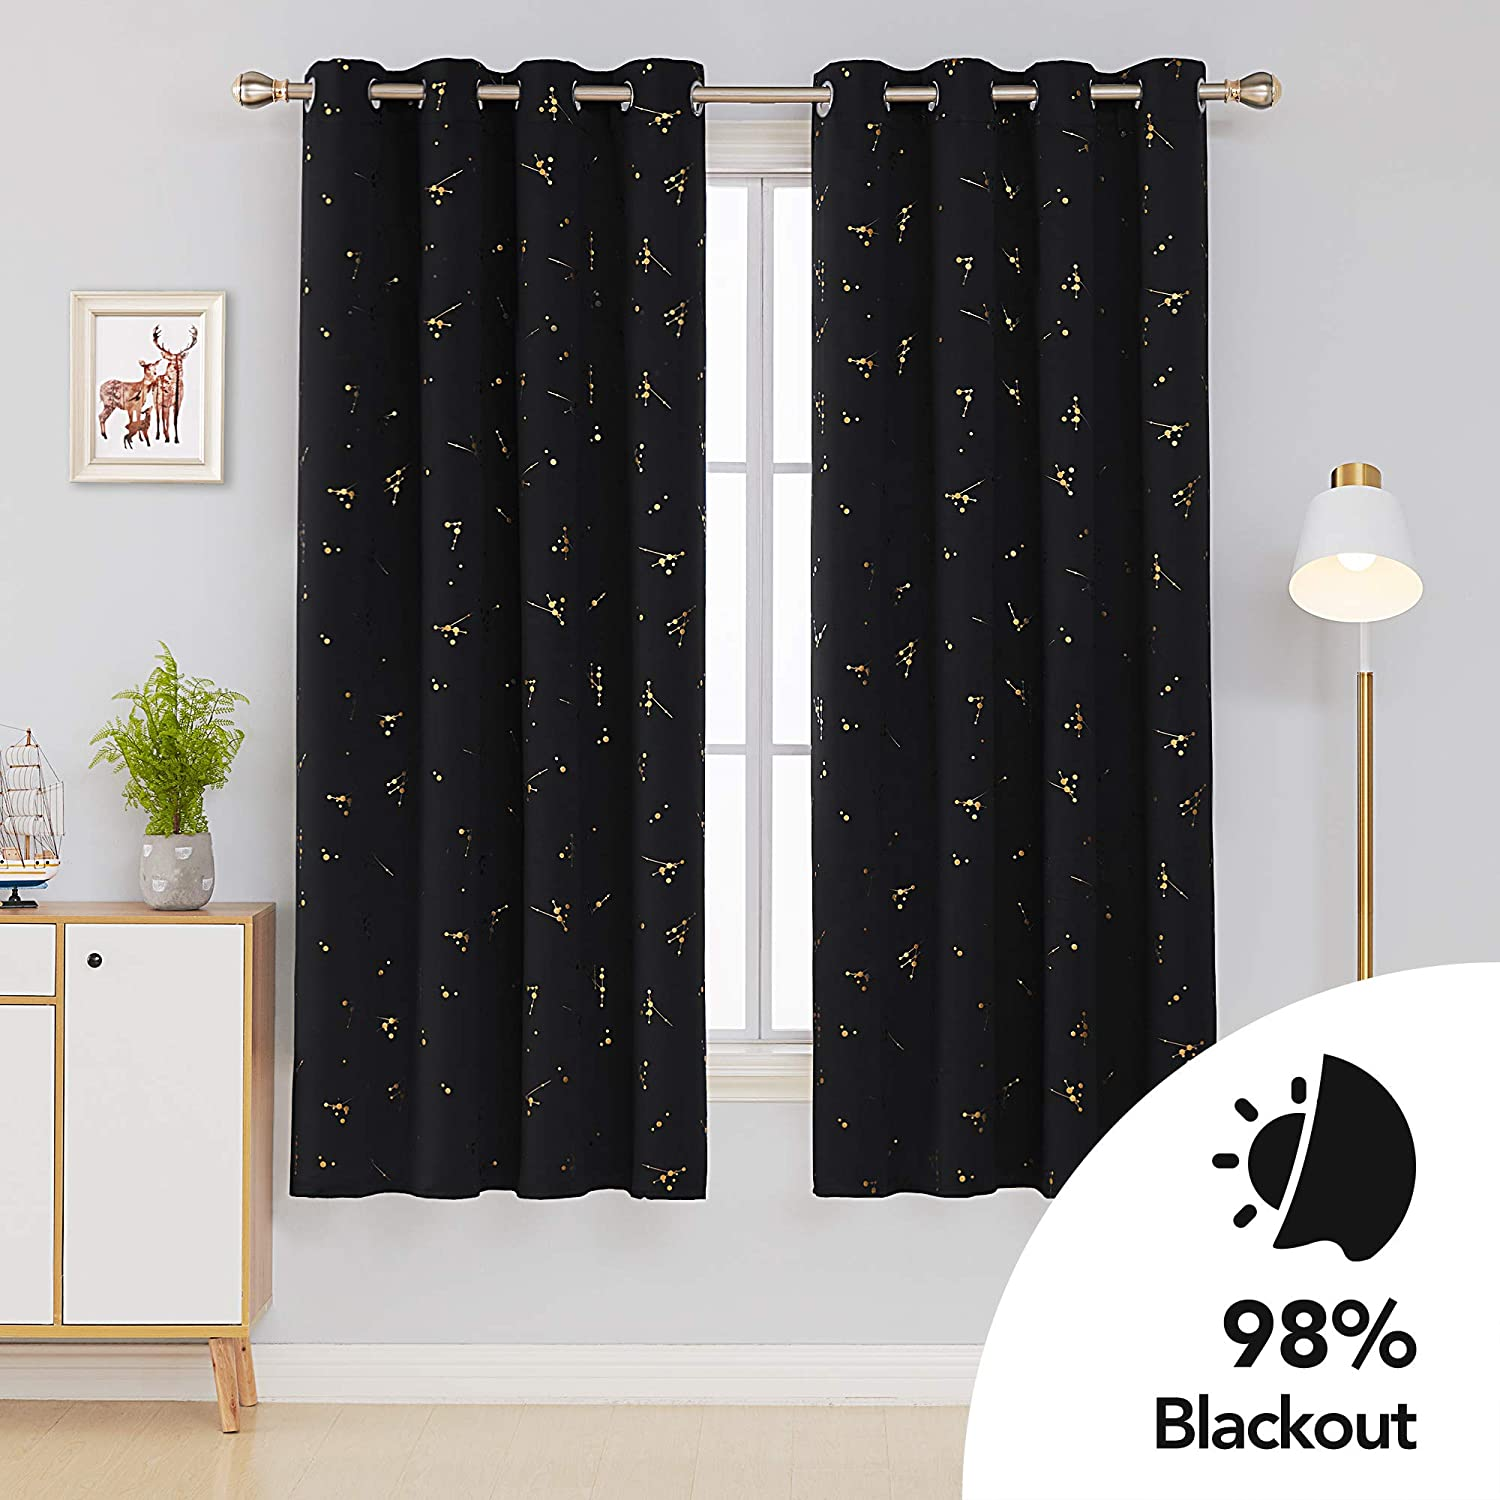 Deconovo Pink Curtains Gold Printed Constellation Thermal Insulated Curtains Eyelet Blackout Curtains for Girls Bedroom Two Matching Tie Backs Pink W46 x L54 One Pair